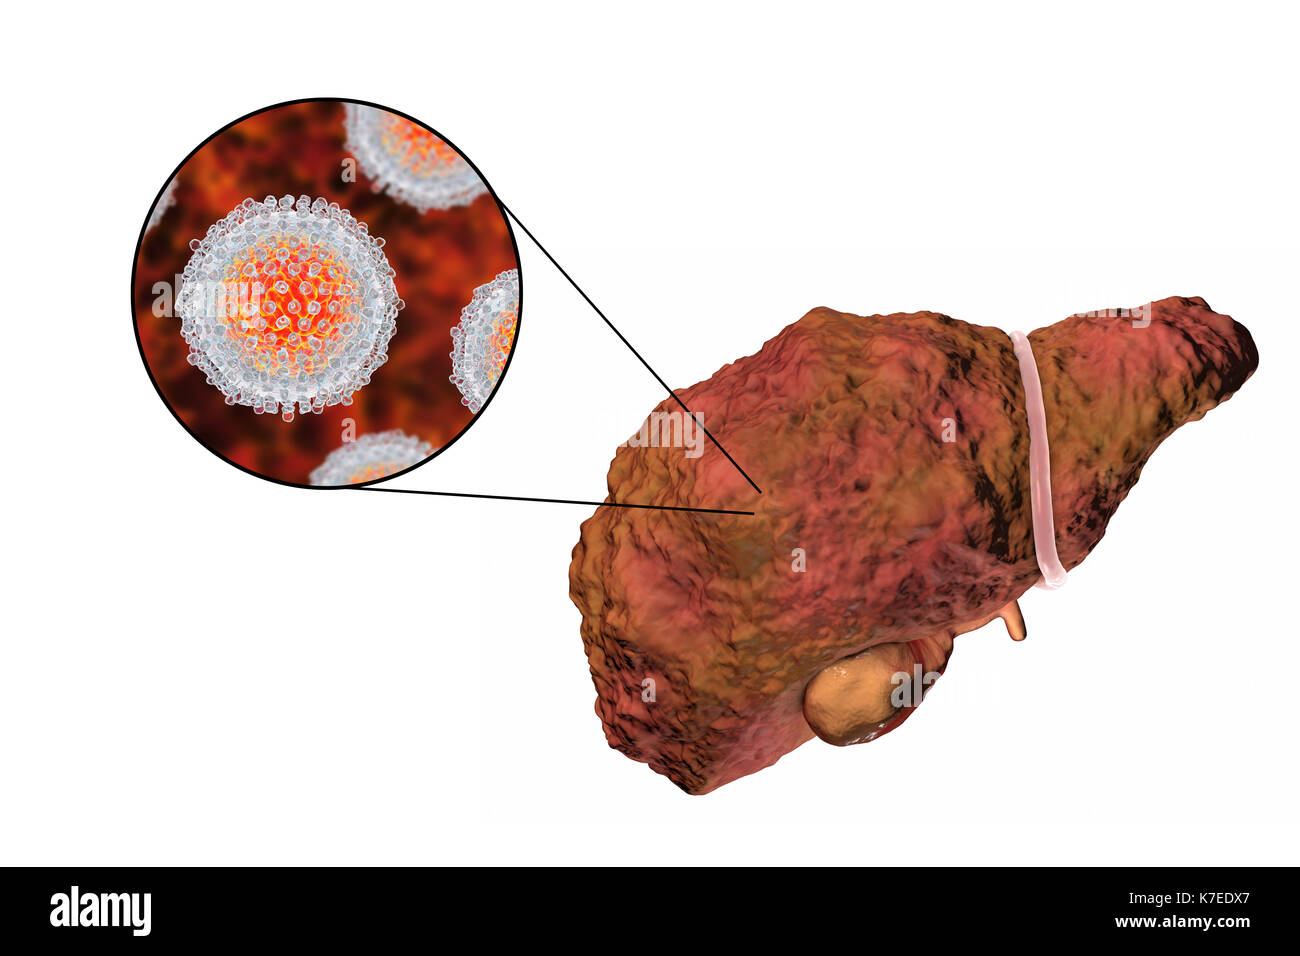 Computer illustration showing a cirrhotic liver and a close-up of hepatitis C viruses. Hepatitis C is a common cause of chronic hepatitis which progresses to liver cirrhosis. Viruses cause cell death (necrosis) in the hepatic lobules, which leads to scarring. This causes the liver surface to appear rough and lumpy instead of the usual smooth healthy appearance. The disease is irreversible and may lead to liver carcinoma. - Stock Image